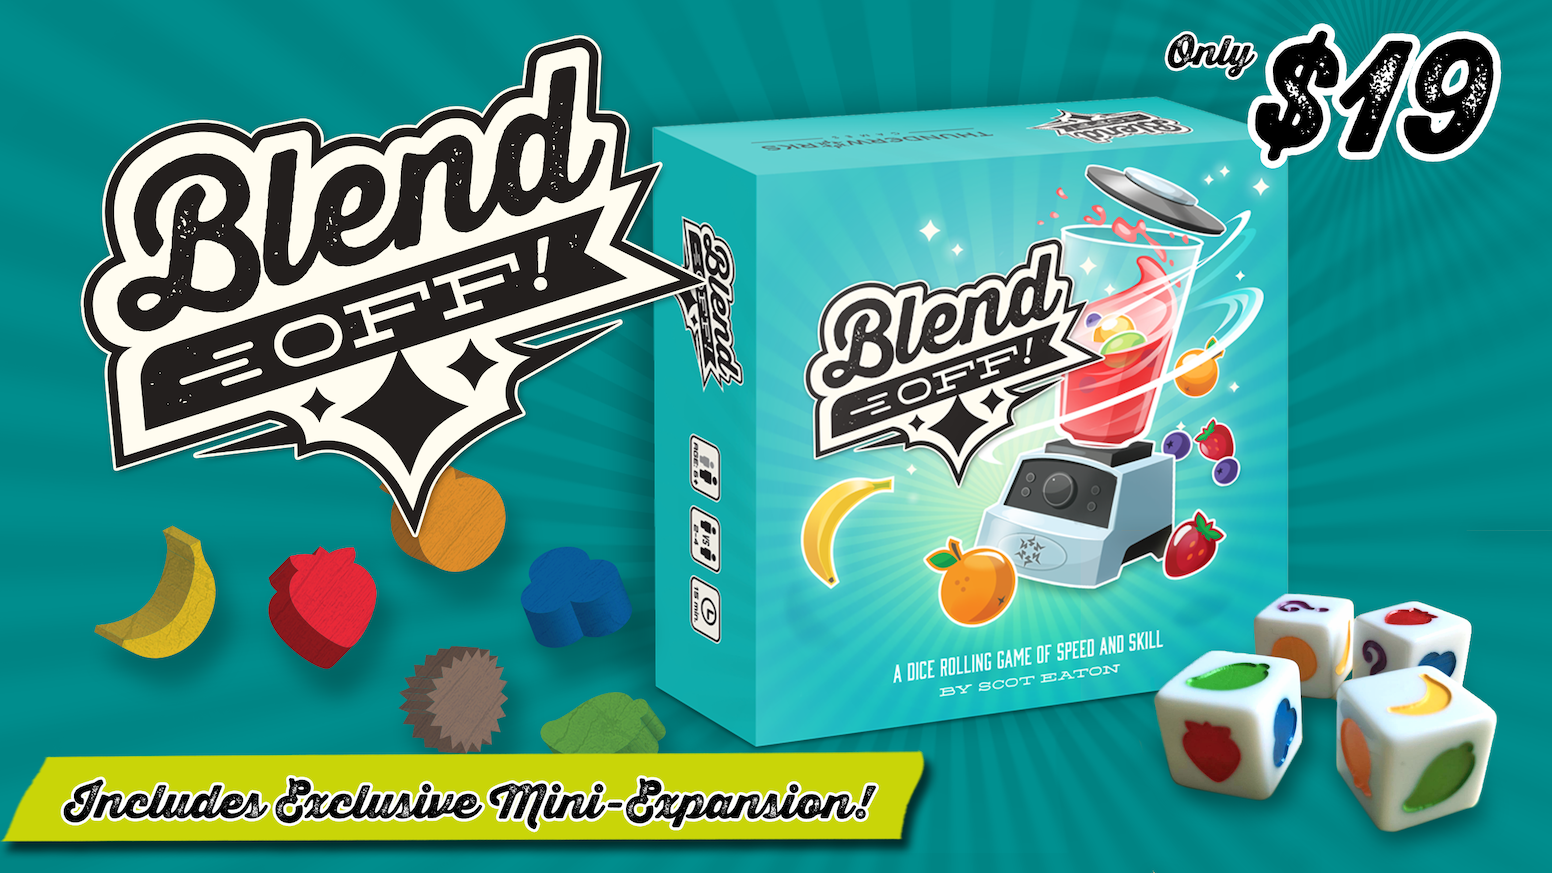 Blend Off! is a dice-rolling game of speed and skill for 2 to 4 players. Master Mixers roll dice to collect fruit and create smoothies!